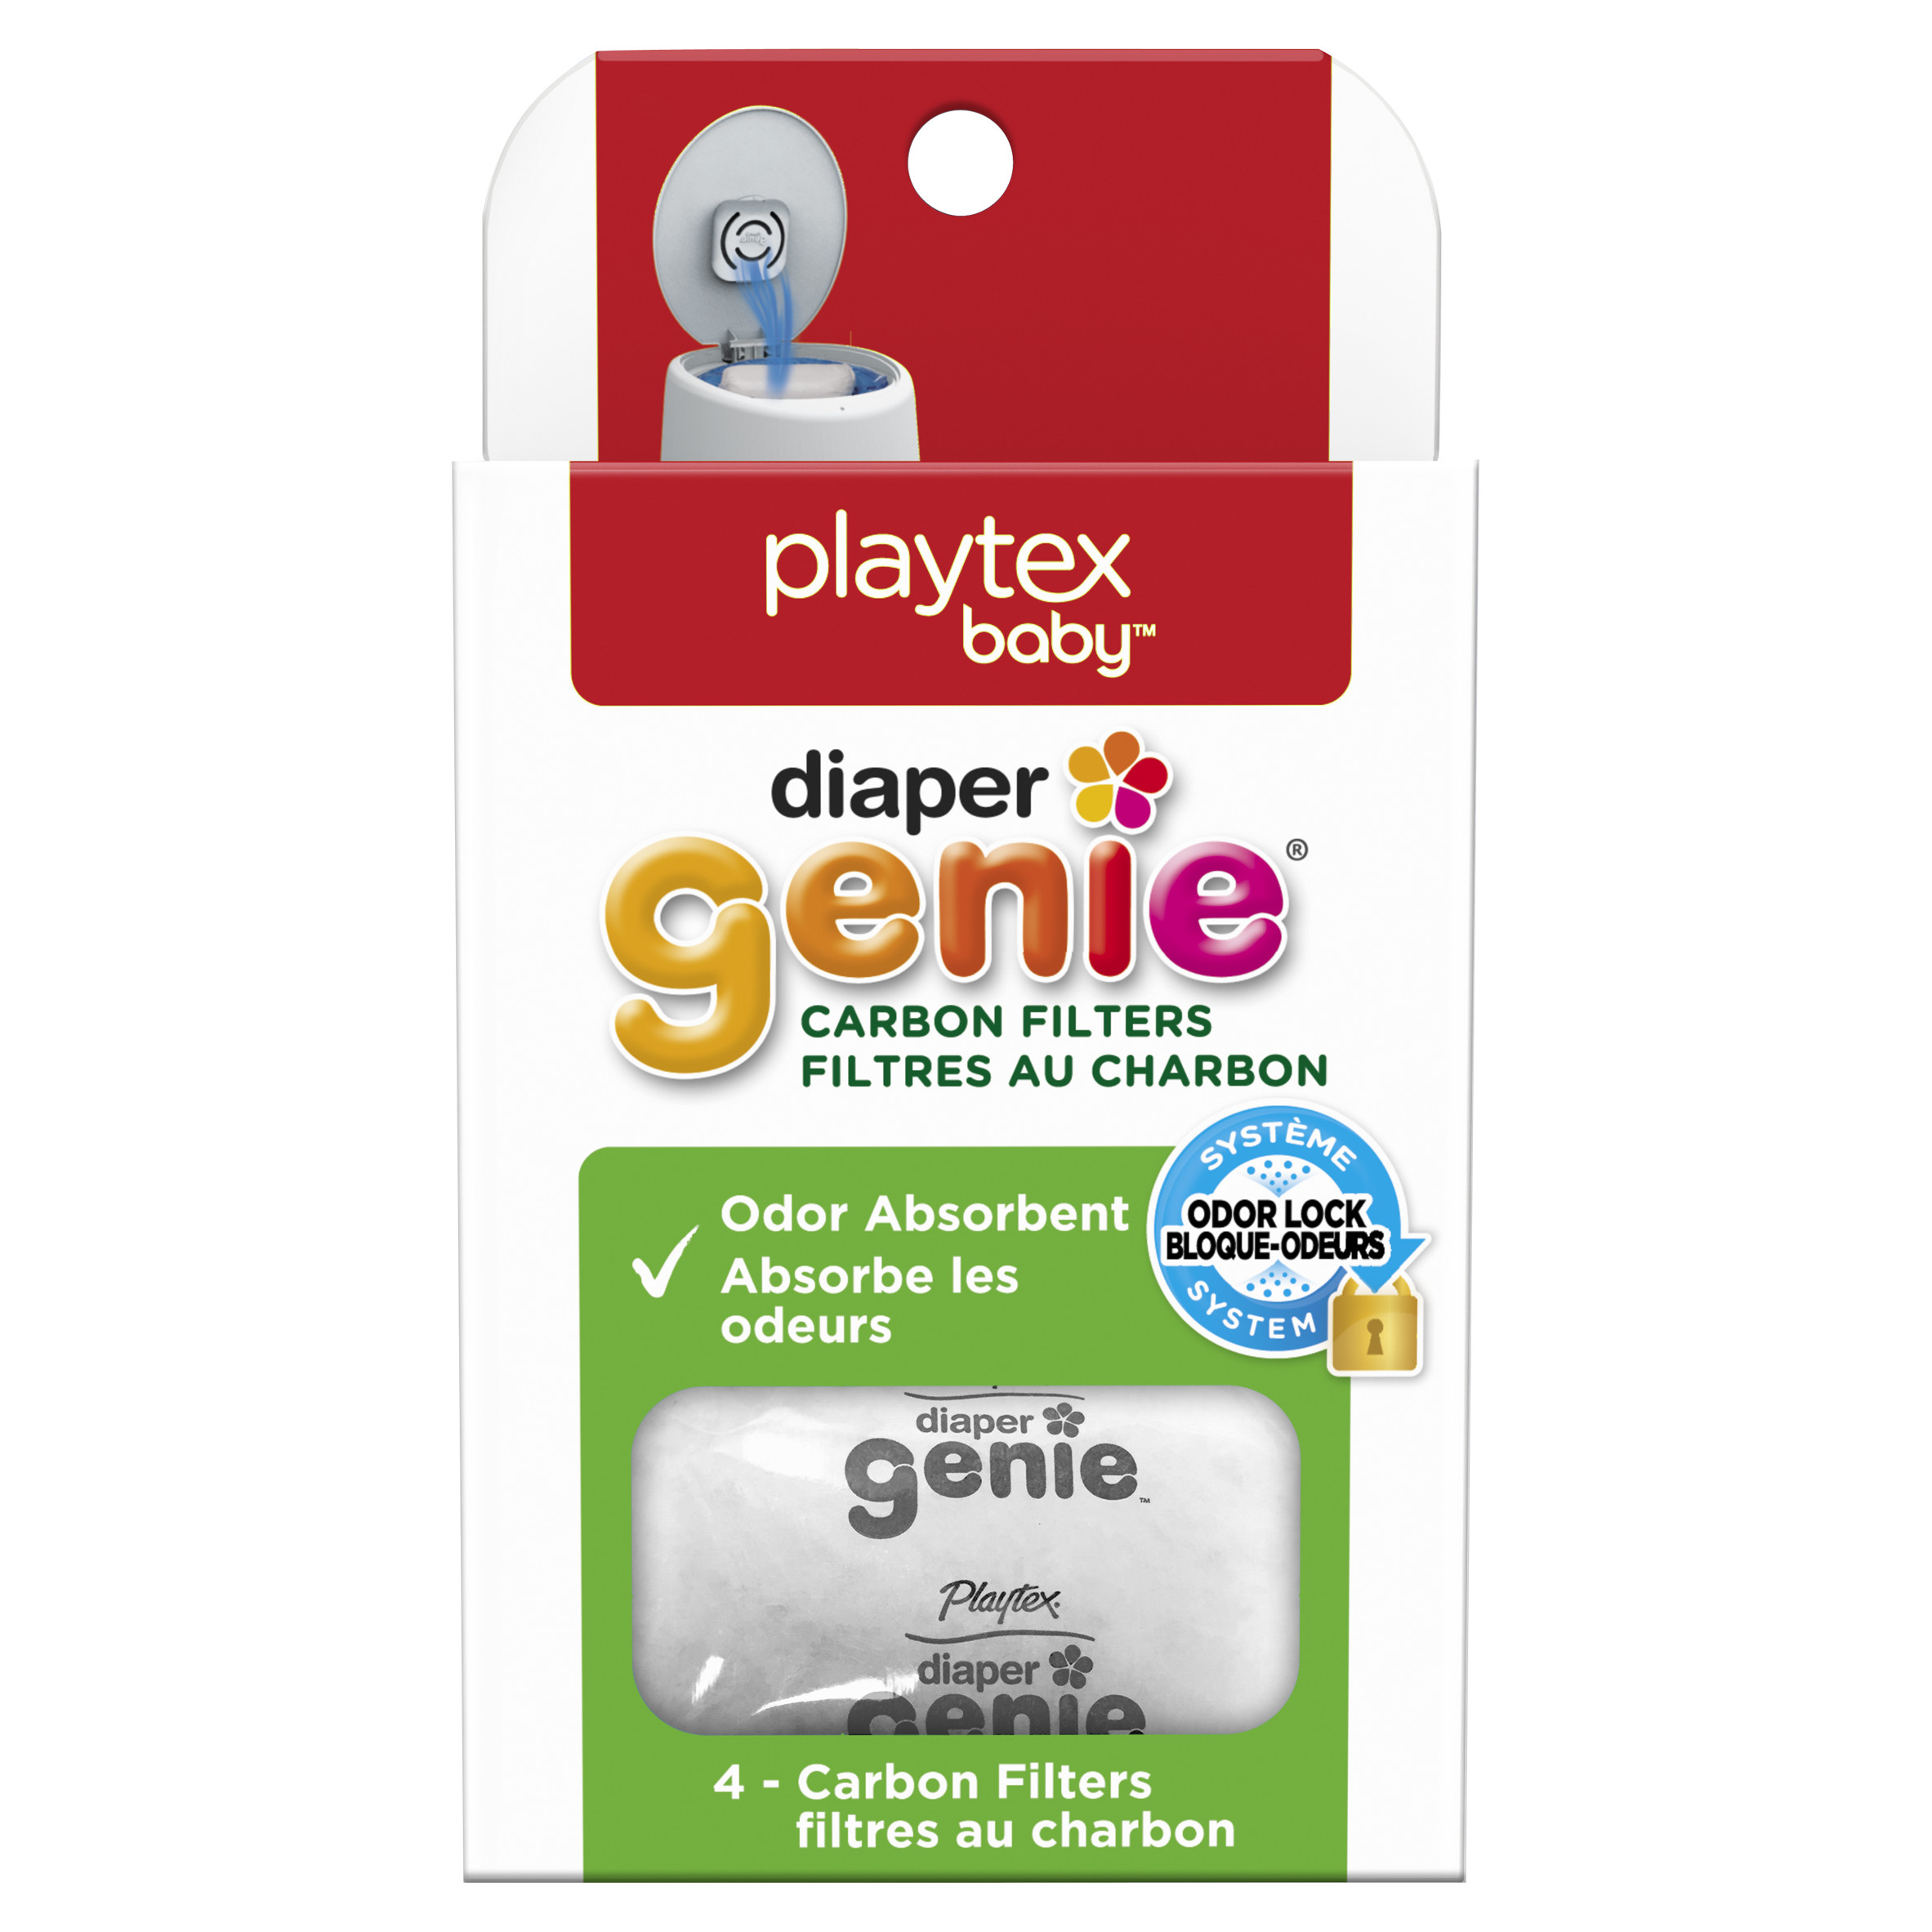 Playtex Diaper Genie Carbon Filter Refills for Diaper Genie Pails - 4 Pack